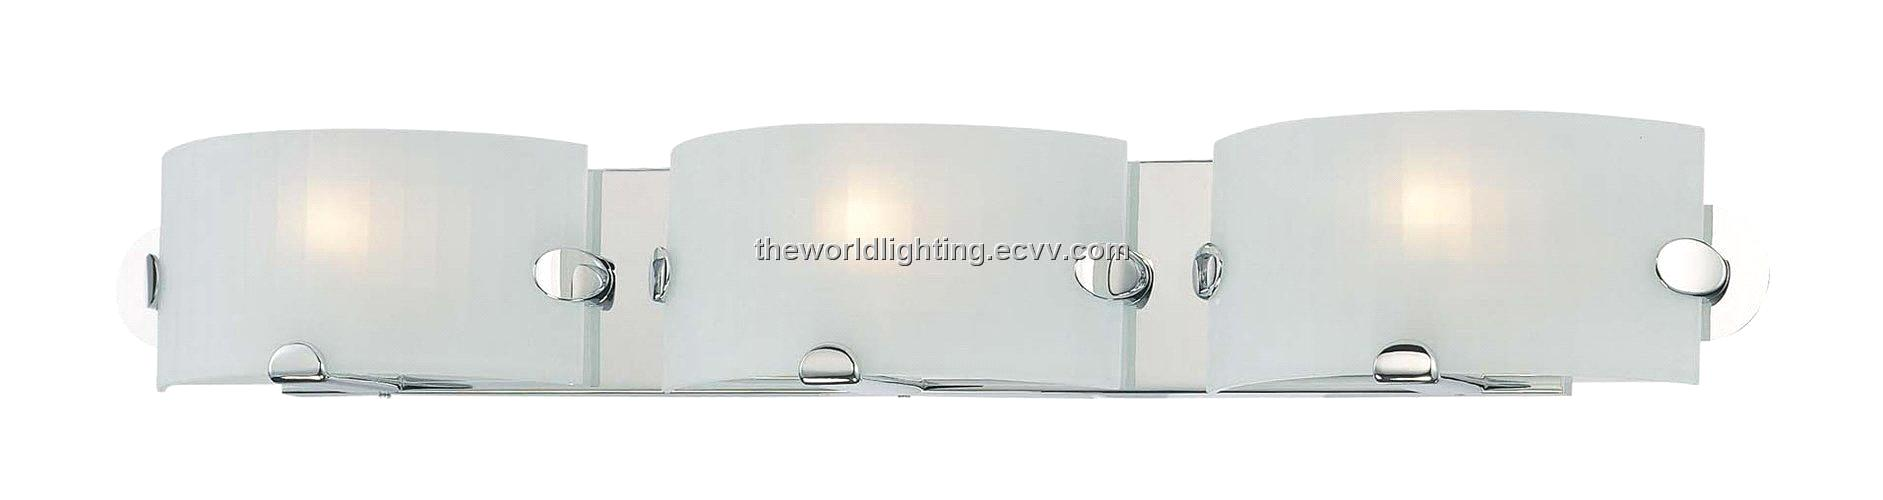 Outdoor Light Fixture Box With Cover, Outdoor, Free Engine Image For User Manual Download